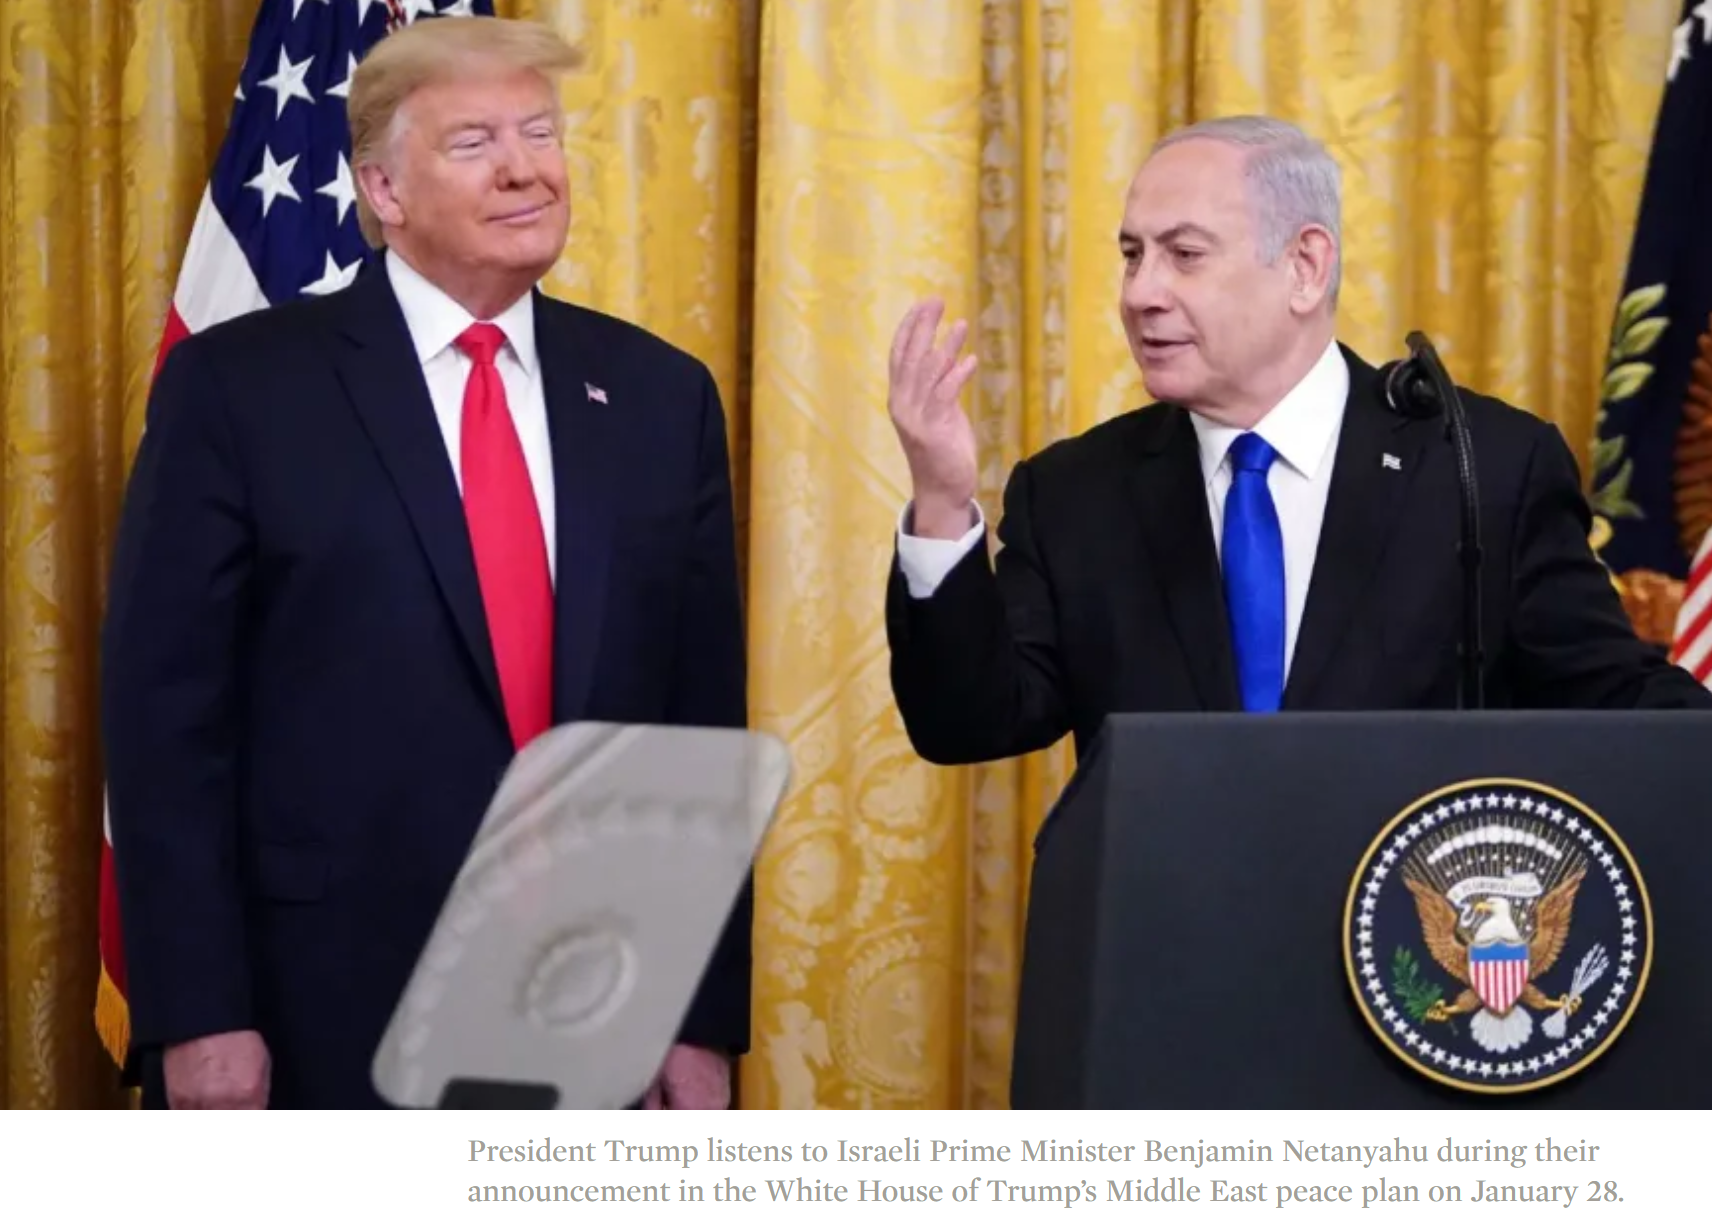 President Trump listens to Israeli Prime Minister Benjamin Netanyahu during their announcement in the White House of Trump's Middle East peace plan on January 28.